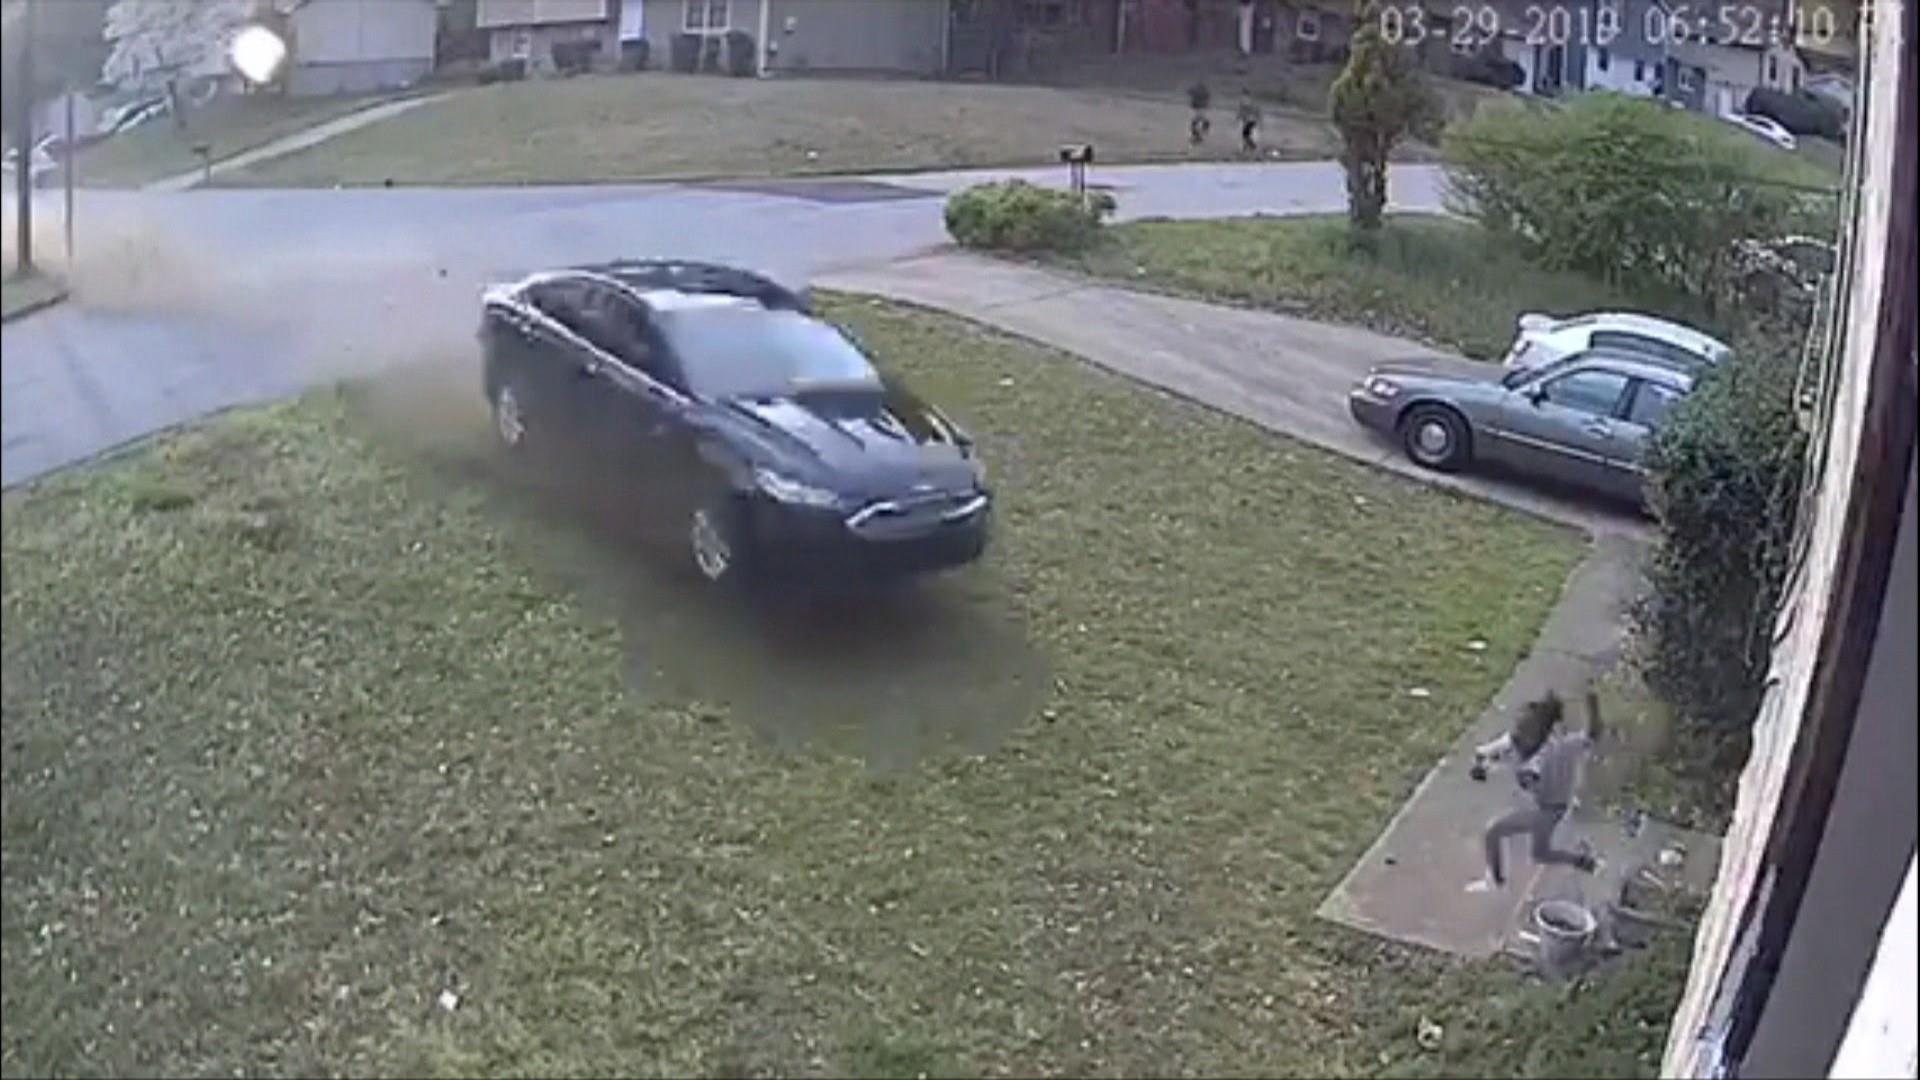 Hit-and-run driver slams into 9-year-old playing in her front yard